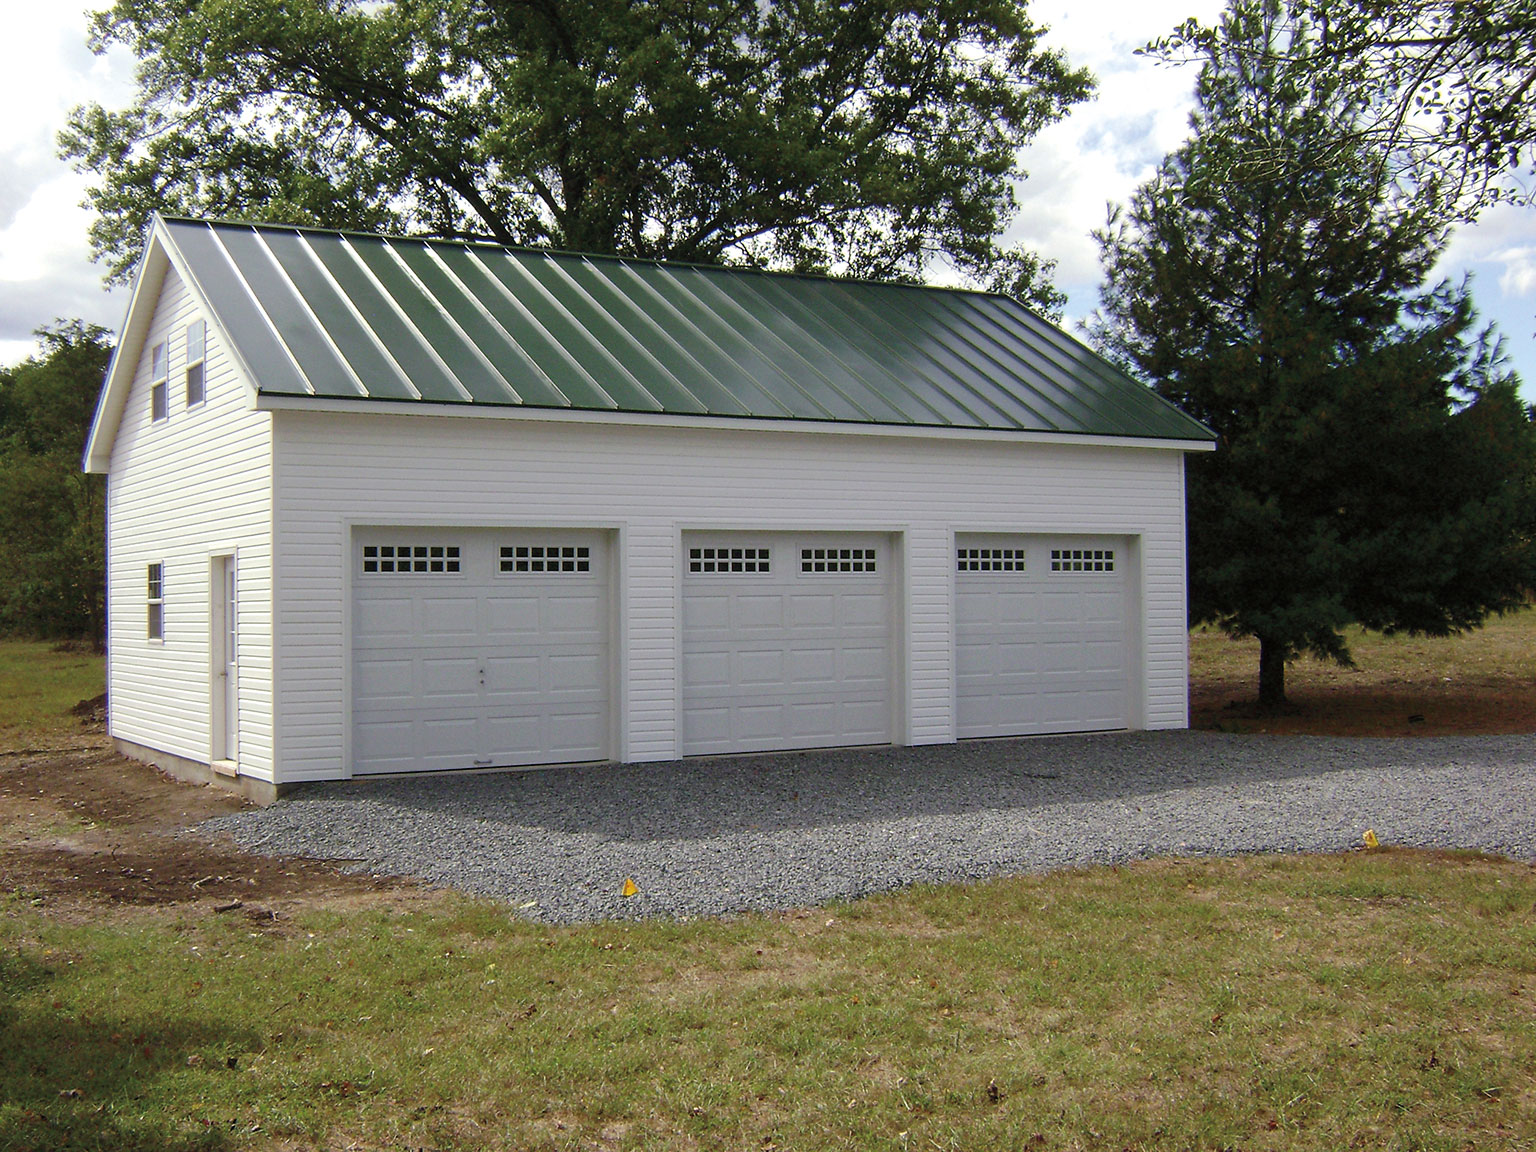 built on site custom amish garages in oneonta ny amish barn company. Black Bedroom Furniture Sets. Home Design Ideas